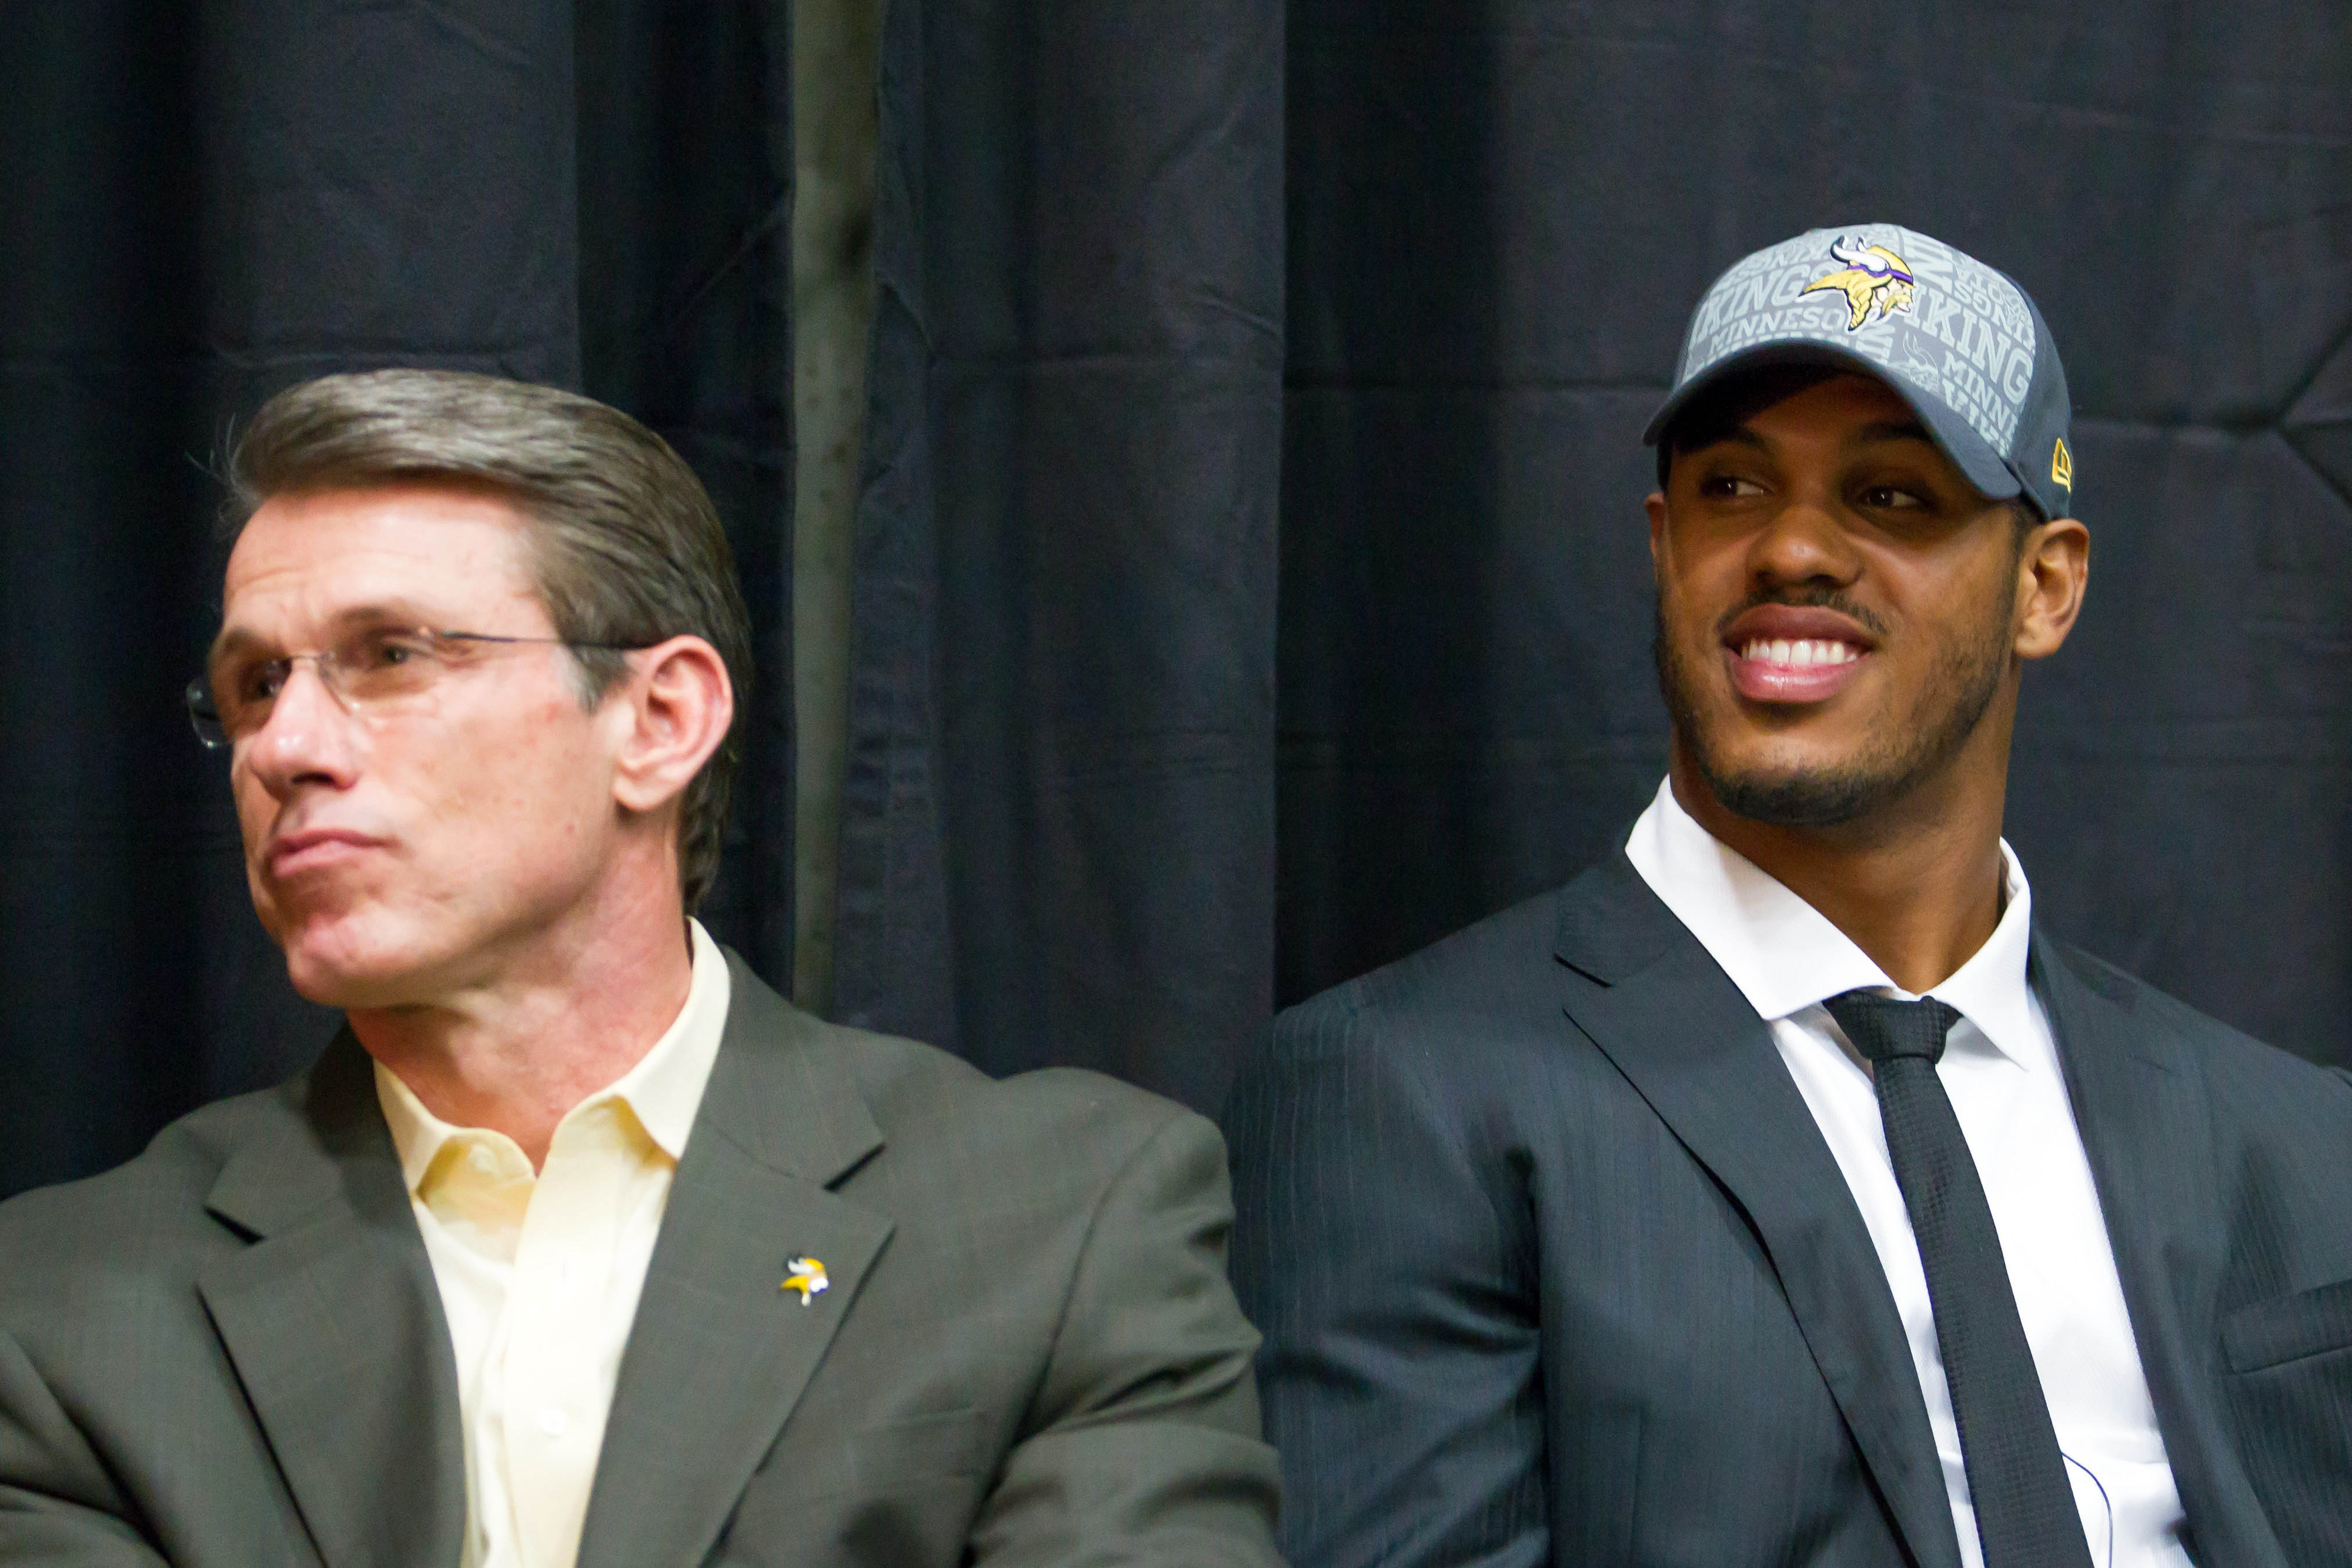 The look on Rick Spielman's face just kind of says it all, doesn't it?